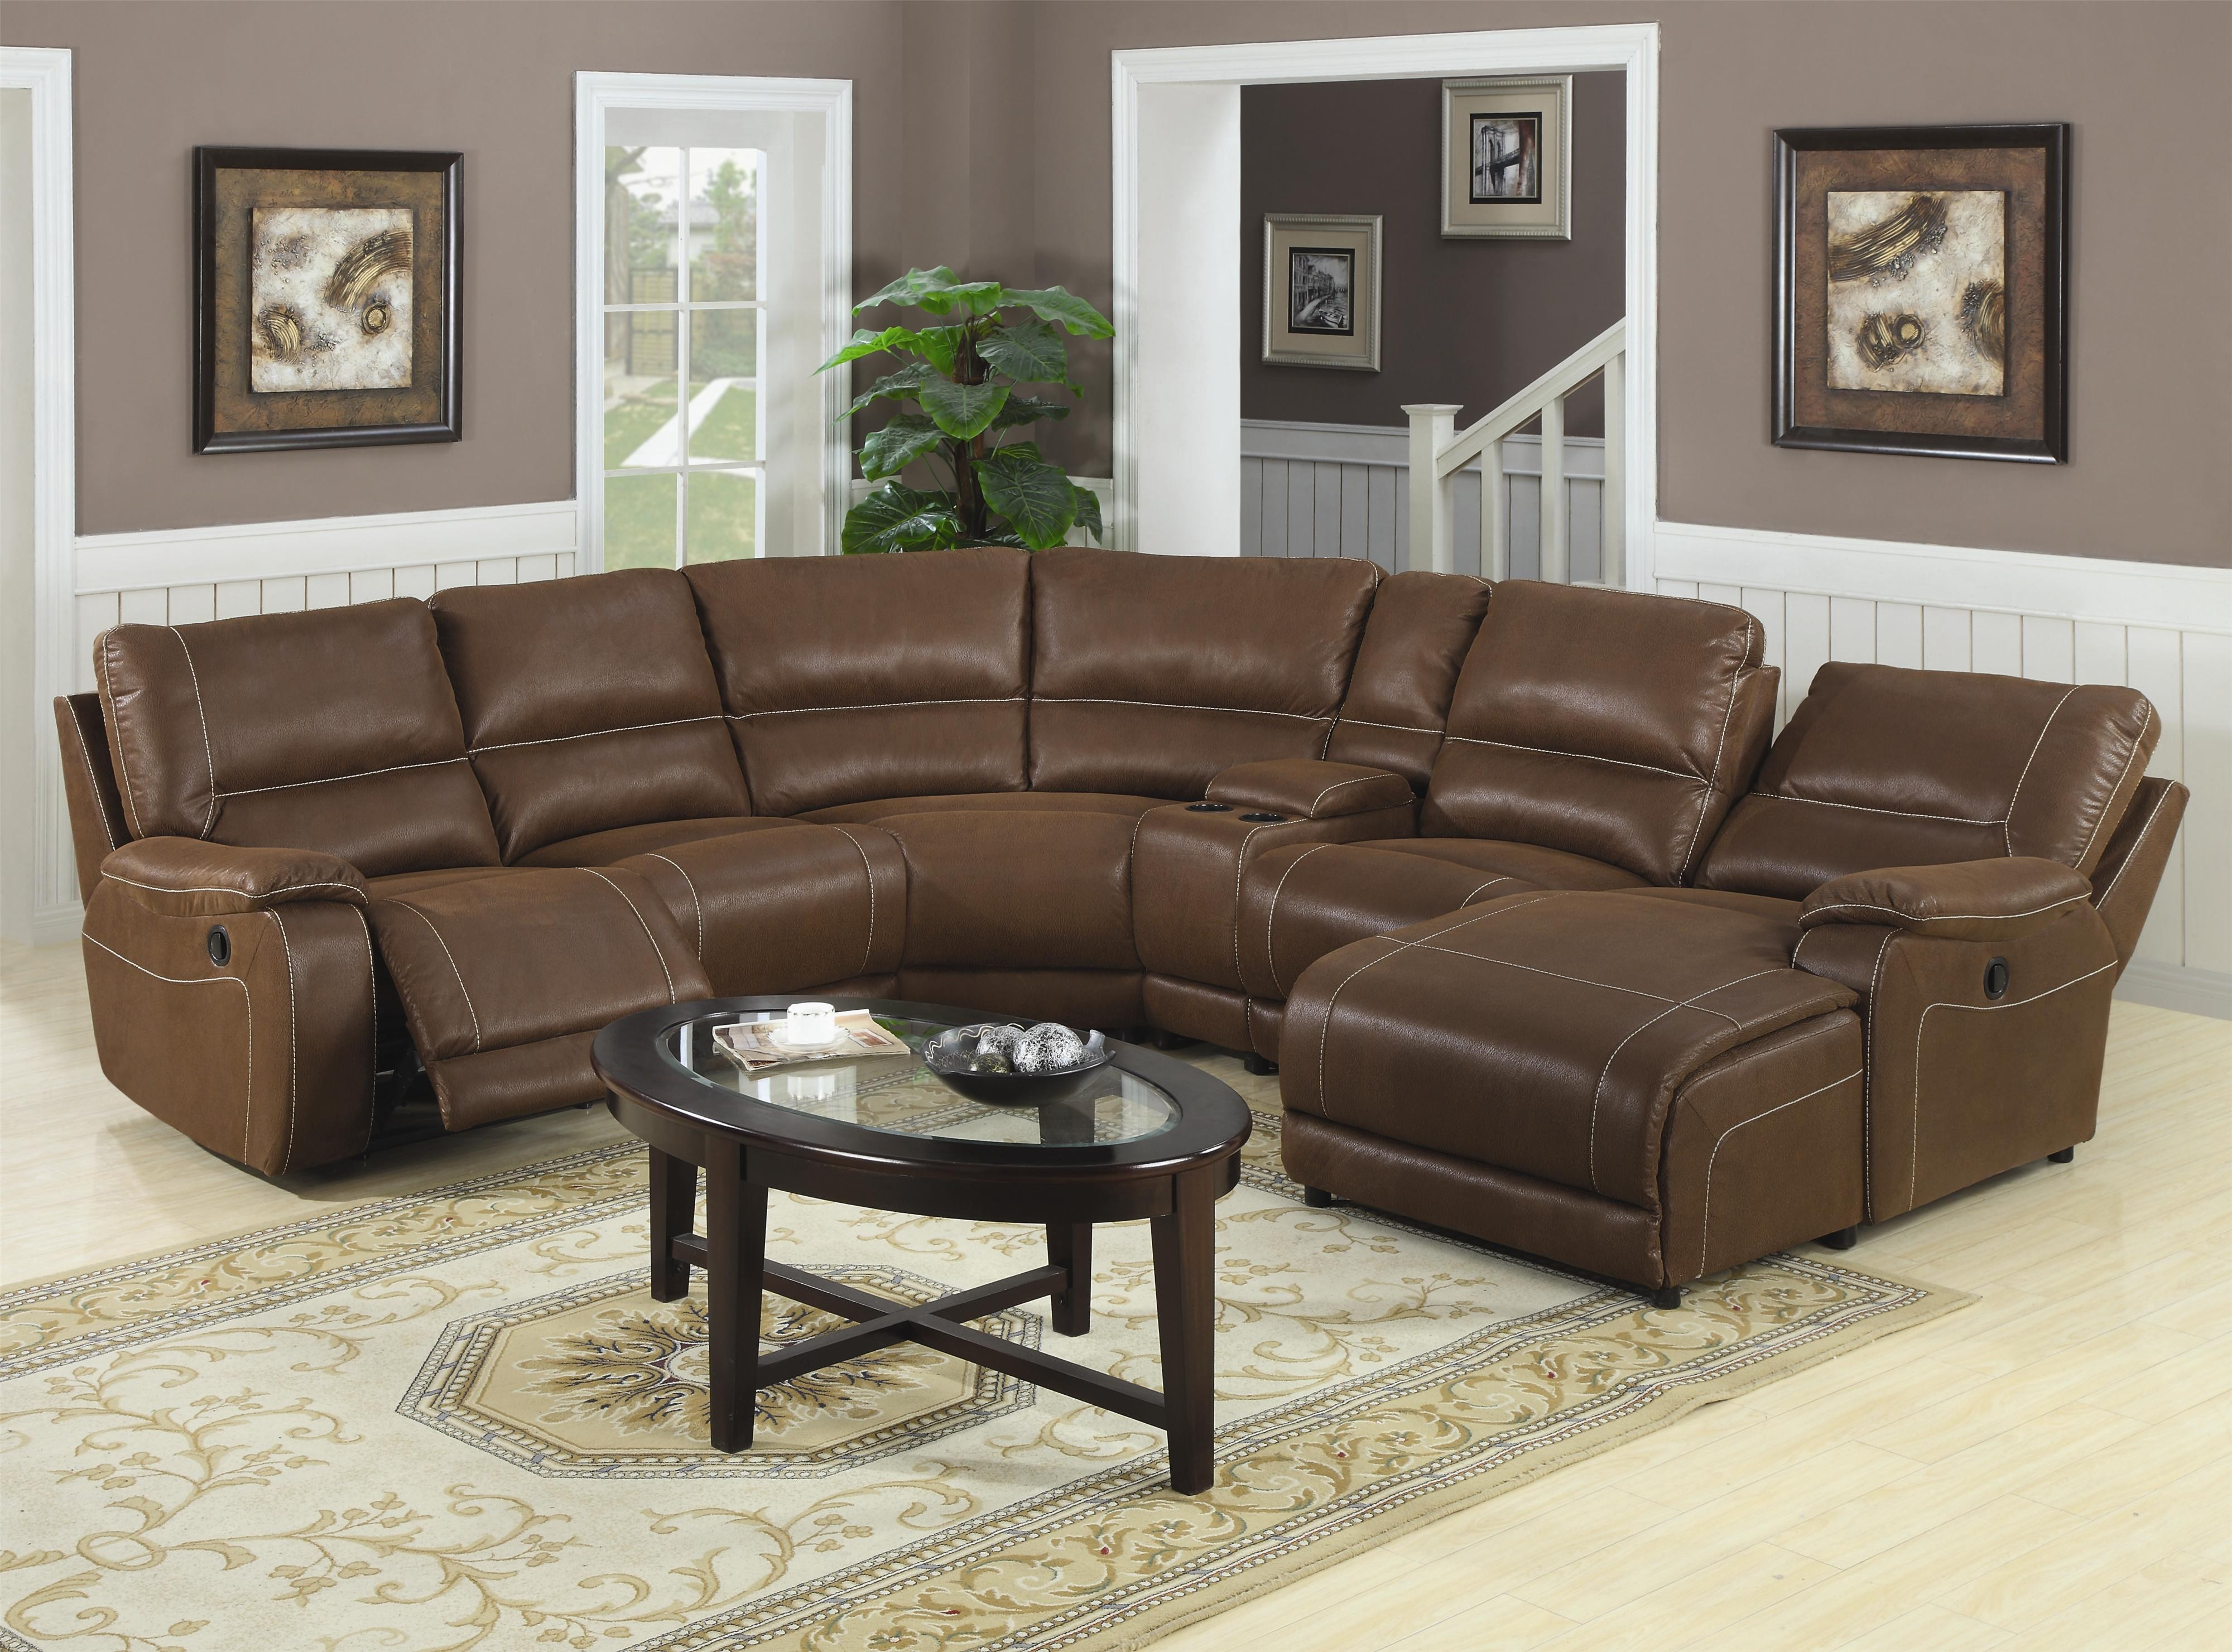 Leather Sectional Sofa Chaise Recliner Photo   8